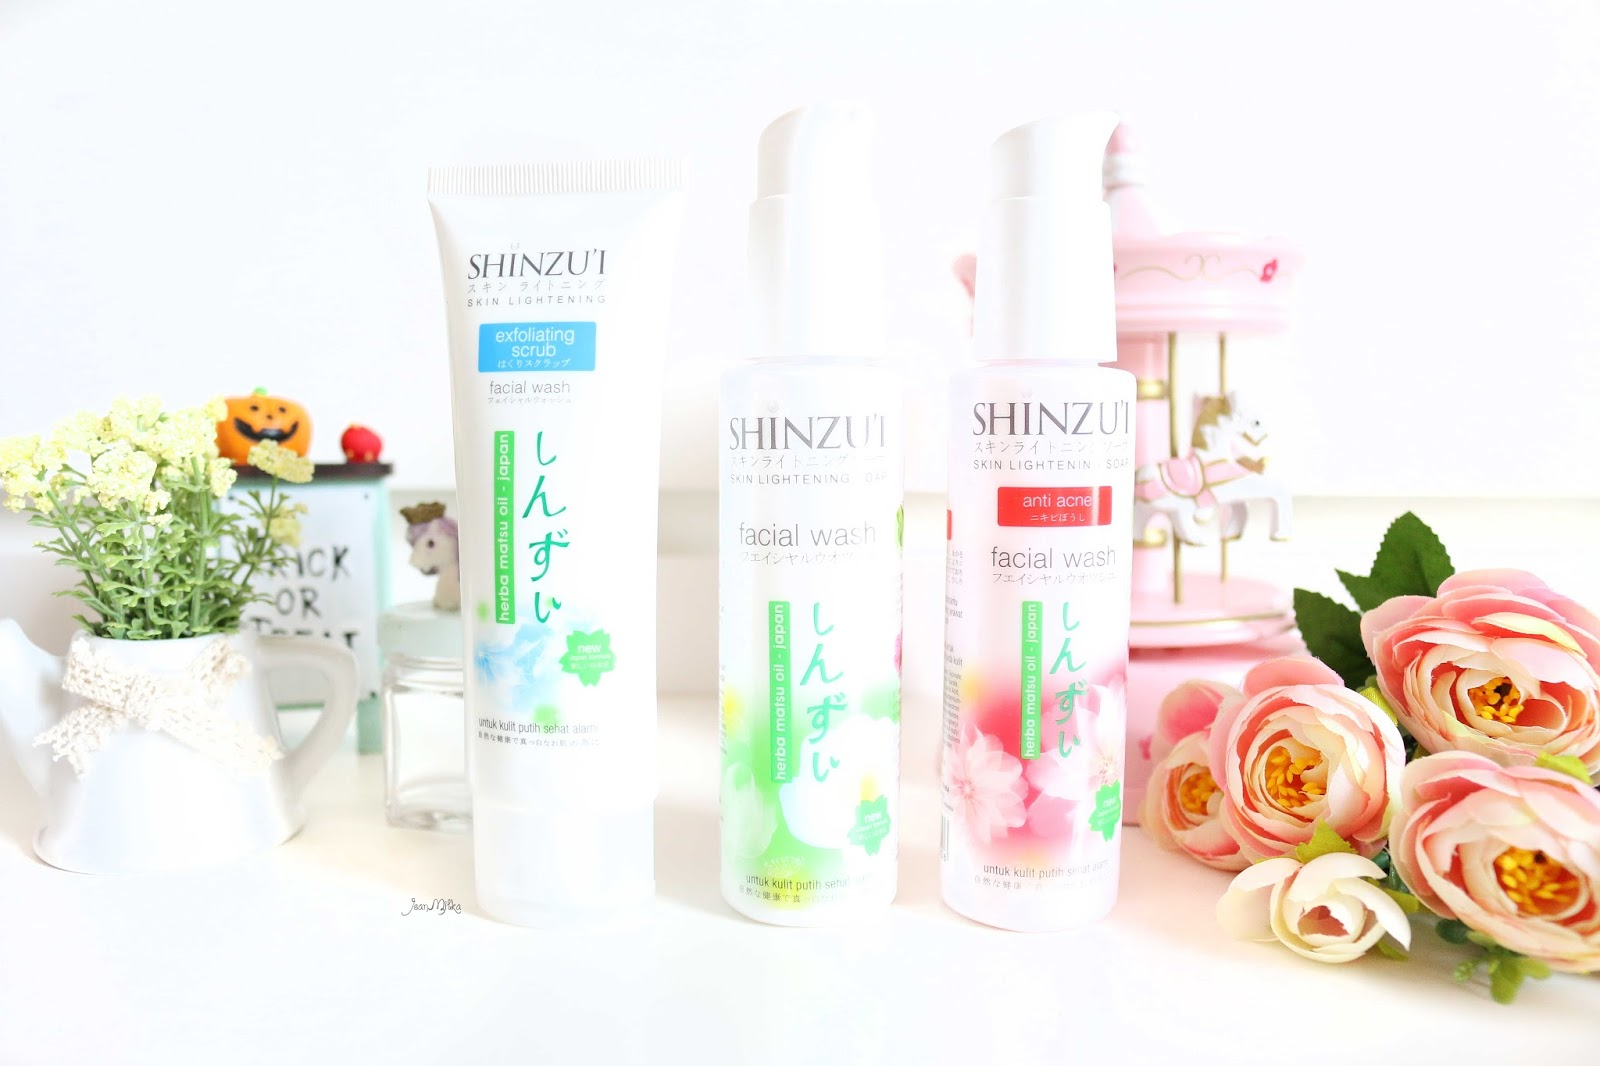 shinzui, putih itu shinzui, skin care, review shinzui, shinzui lightening series, shinzui scrub, shinzui facial wash, perawatan wajah